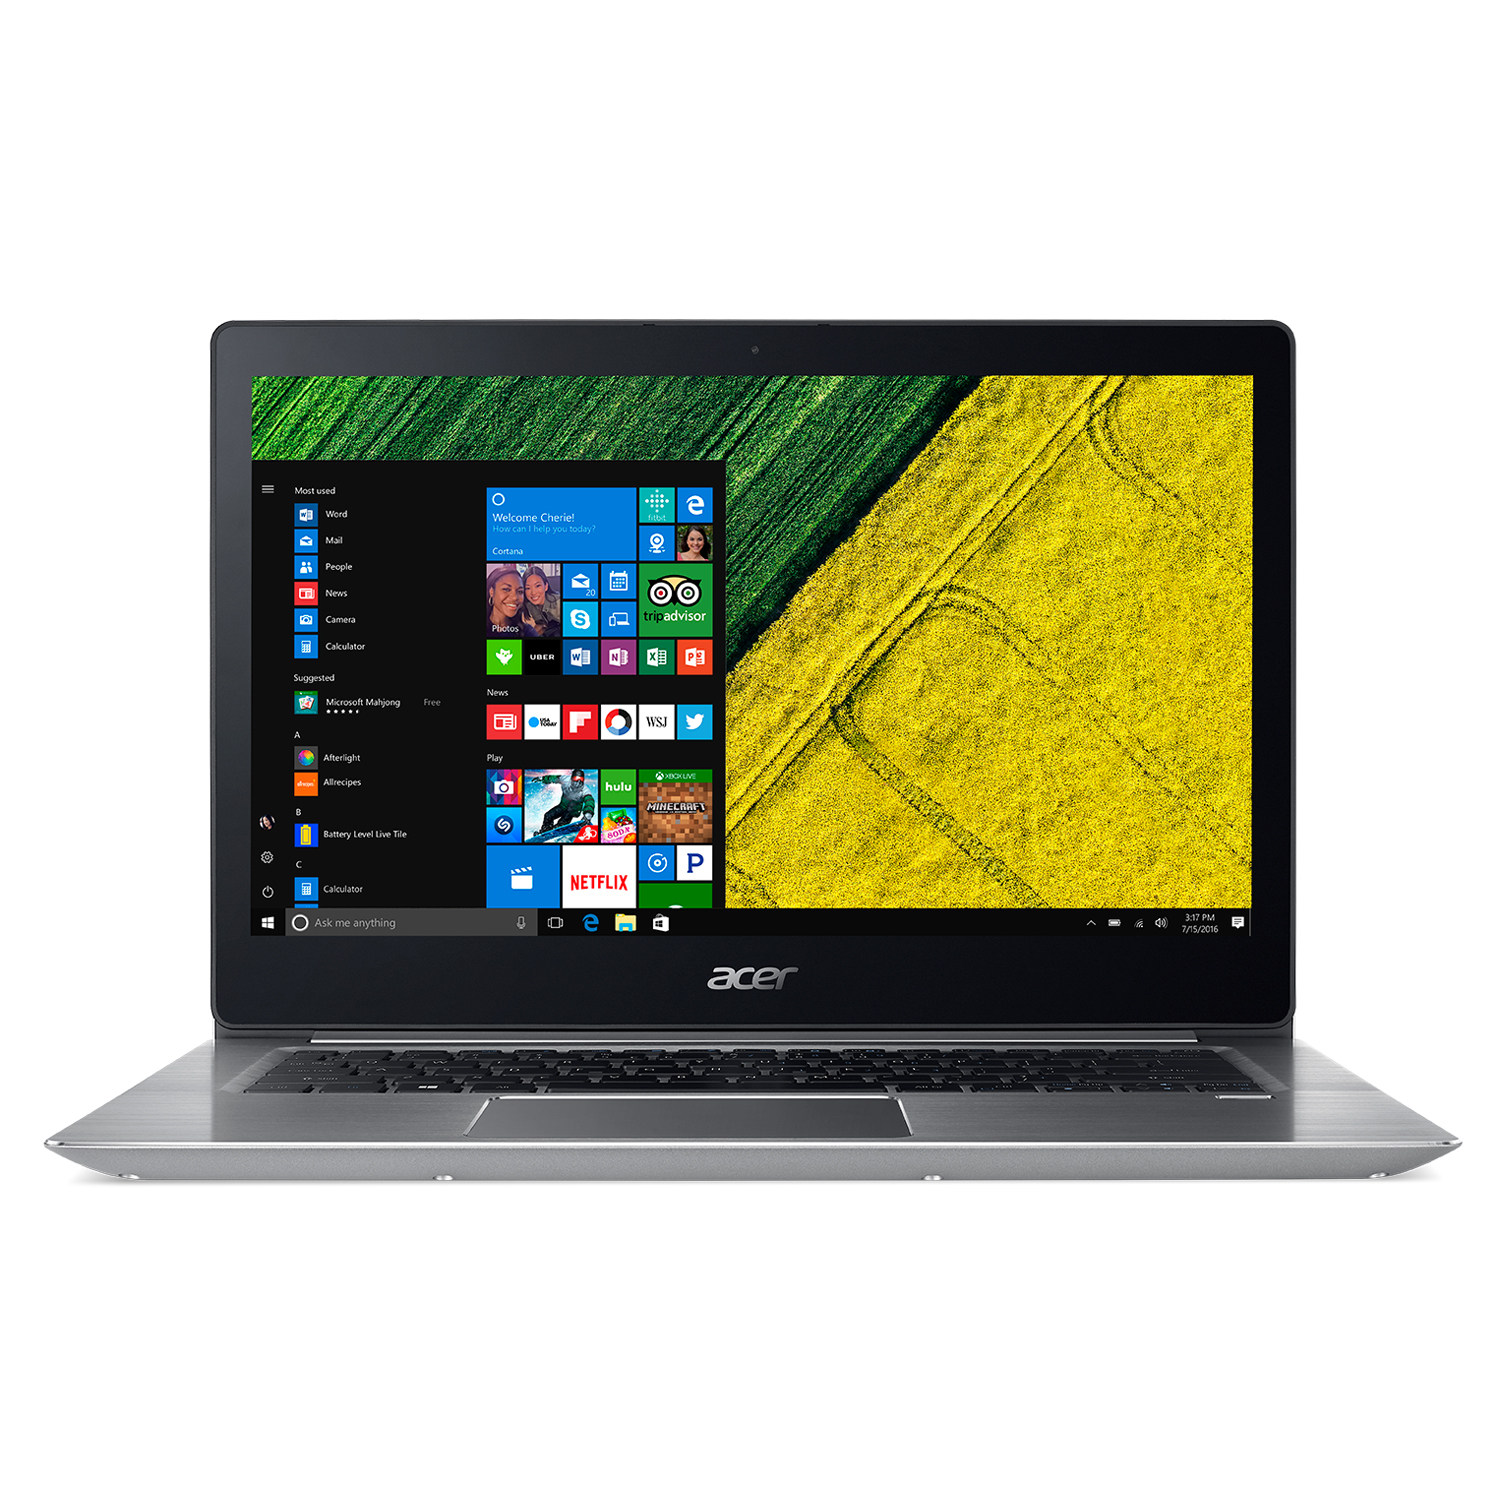 "Acer Swift 3, 15.6"" Full HD, 8th Gen Intel Core i5-8250U, NVIDIA GeForce MX150, 8GB DDR4, 256GB SSD, Windows 10, SF315-51G-51CE"